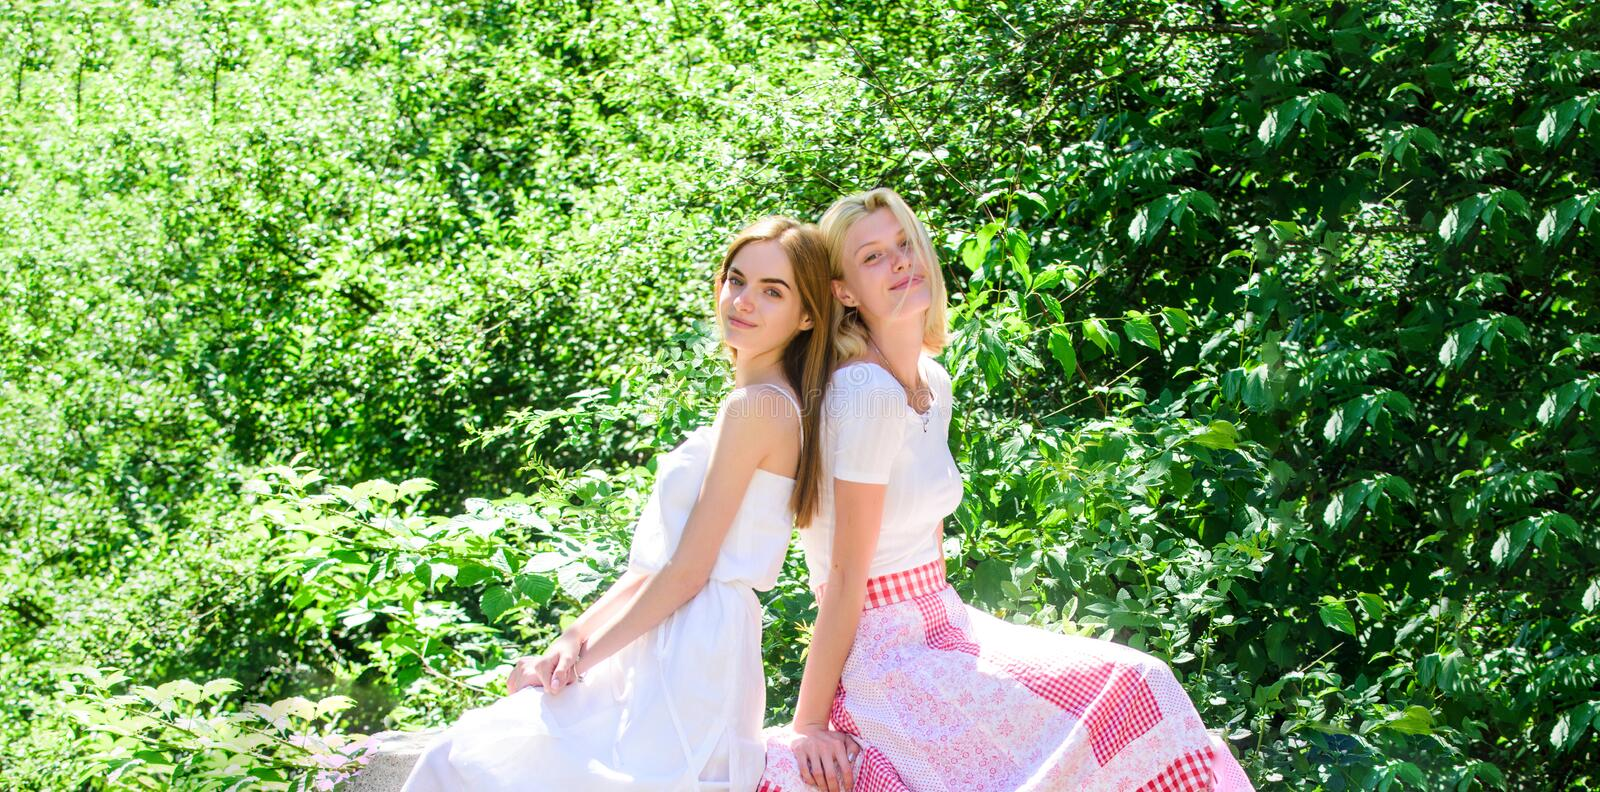 Spring nature lovers. natural beauty. summer fashion. beautiful women in green park. sexy girls relax outdoor royalty free stock photos